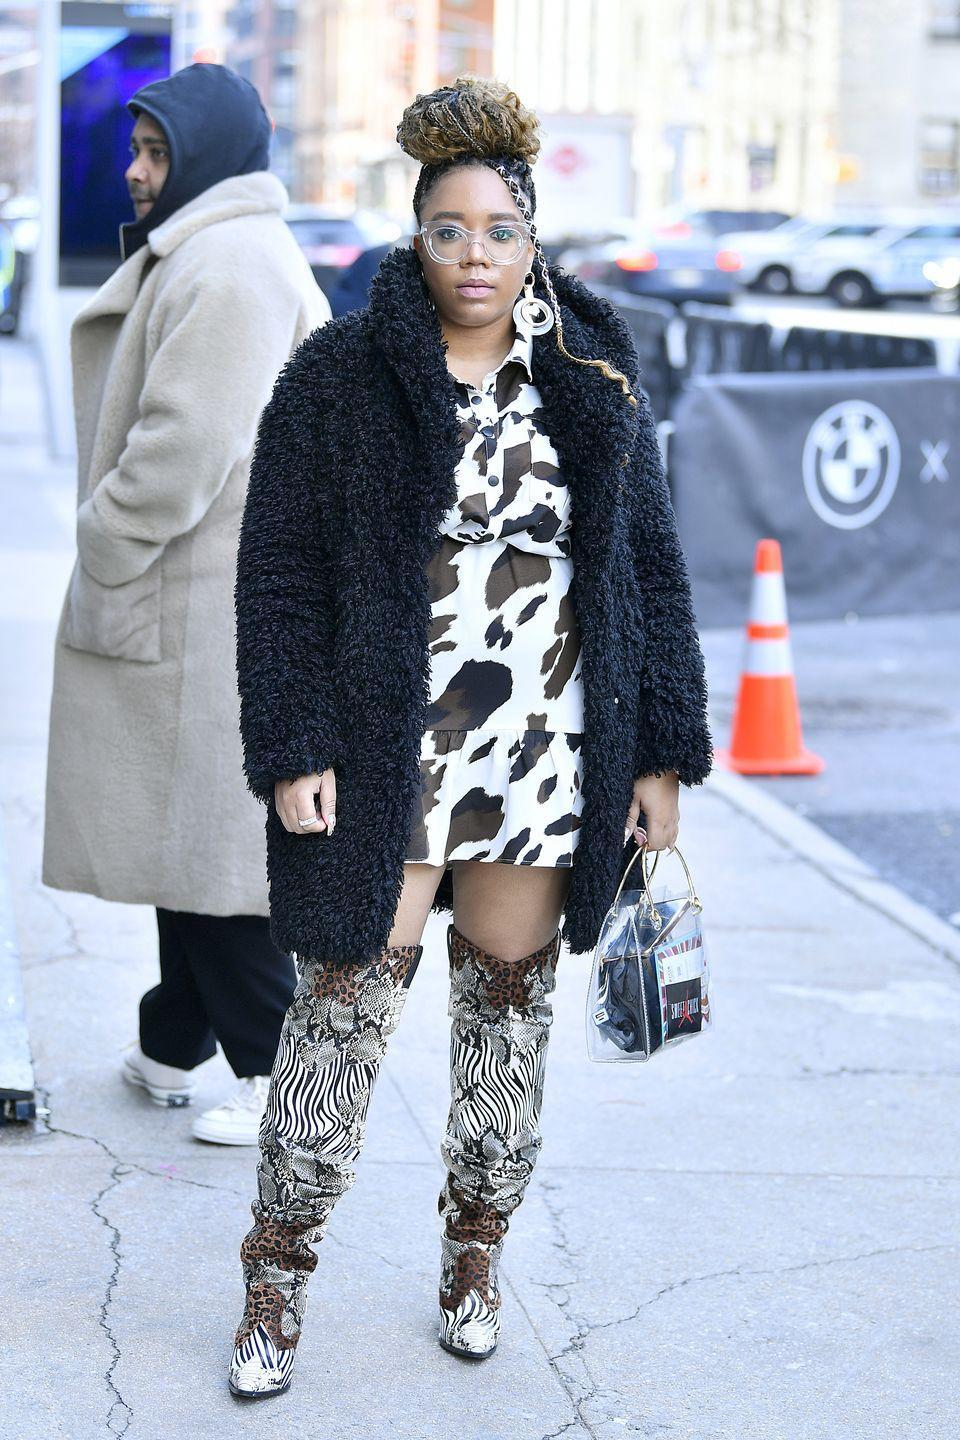 <p>Cow hide spots, zebra-printed cowboy boots – this look is like a how-to for fall fierceness. Go for animal prints that give off that urban cowgirl look.<br><br></p>